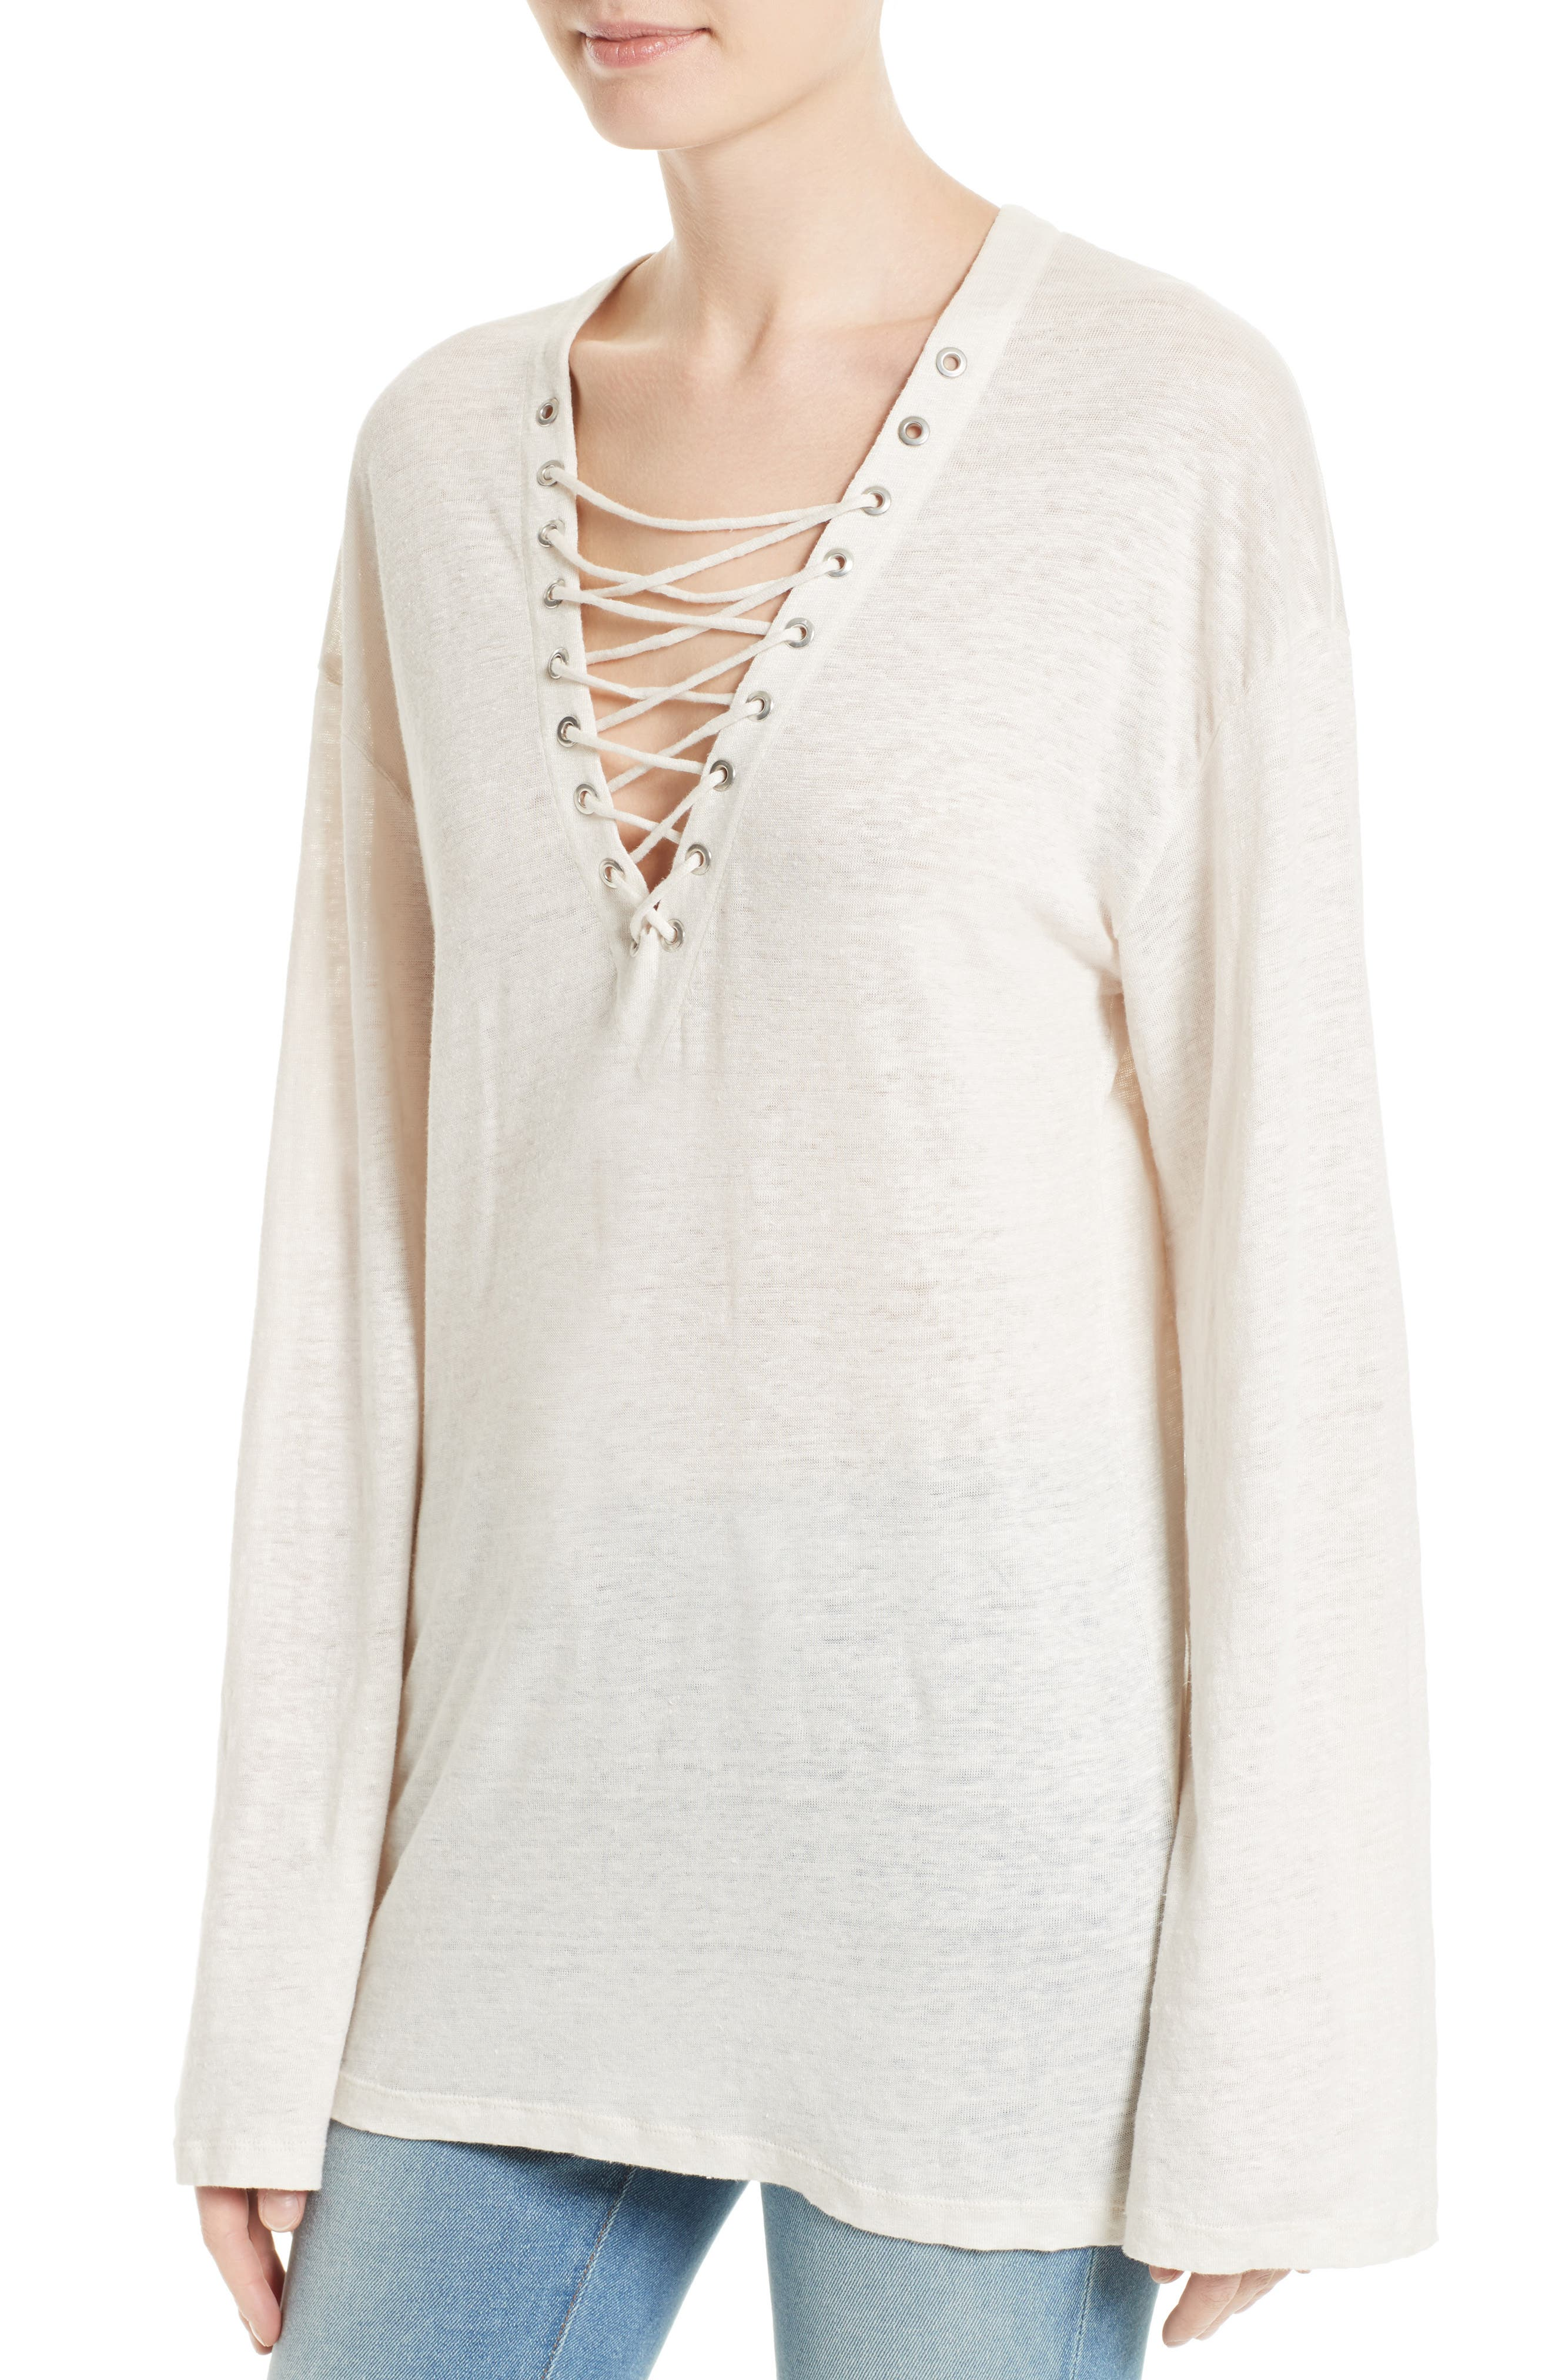 Alety Lace-Up Linen Top,                             Alternate thumbnail 4, color,                             Ivory